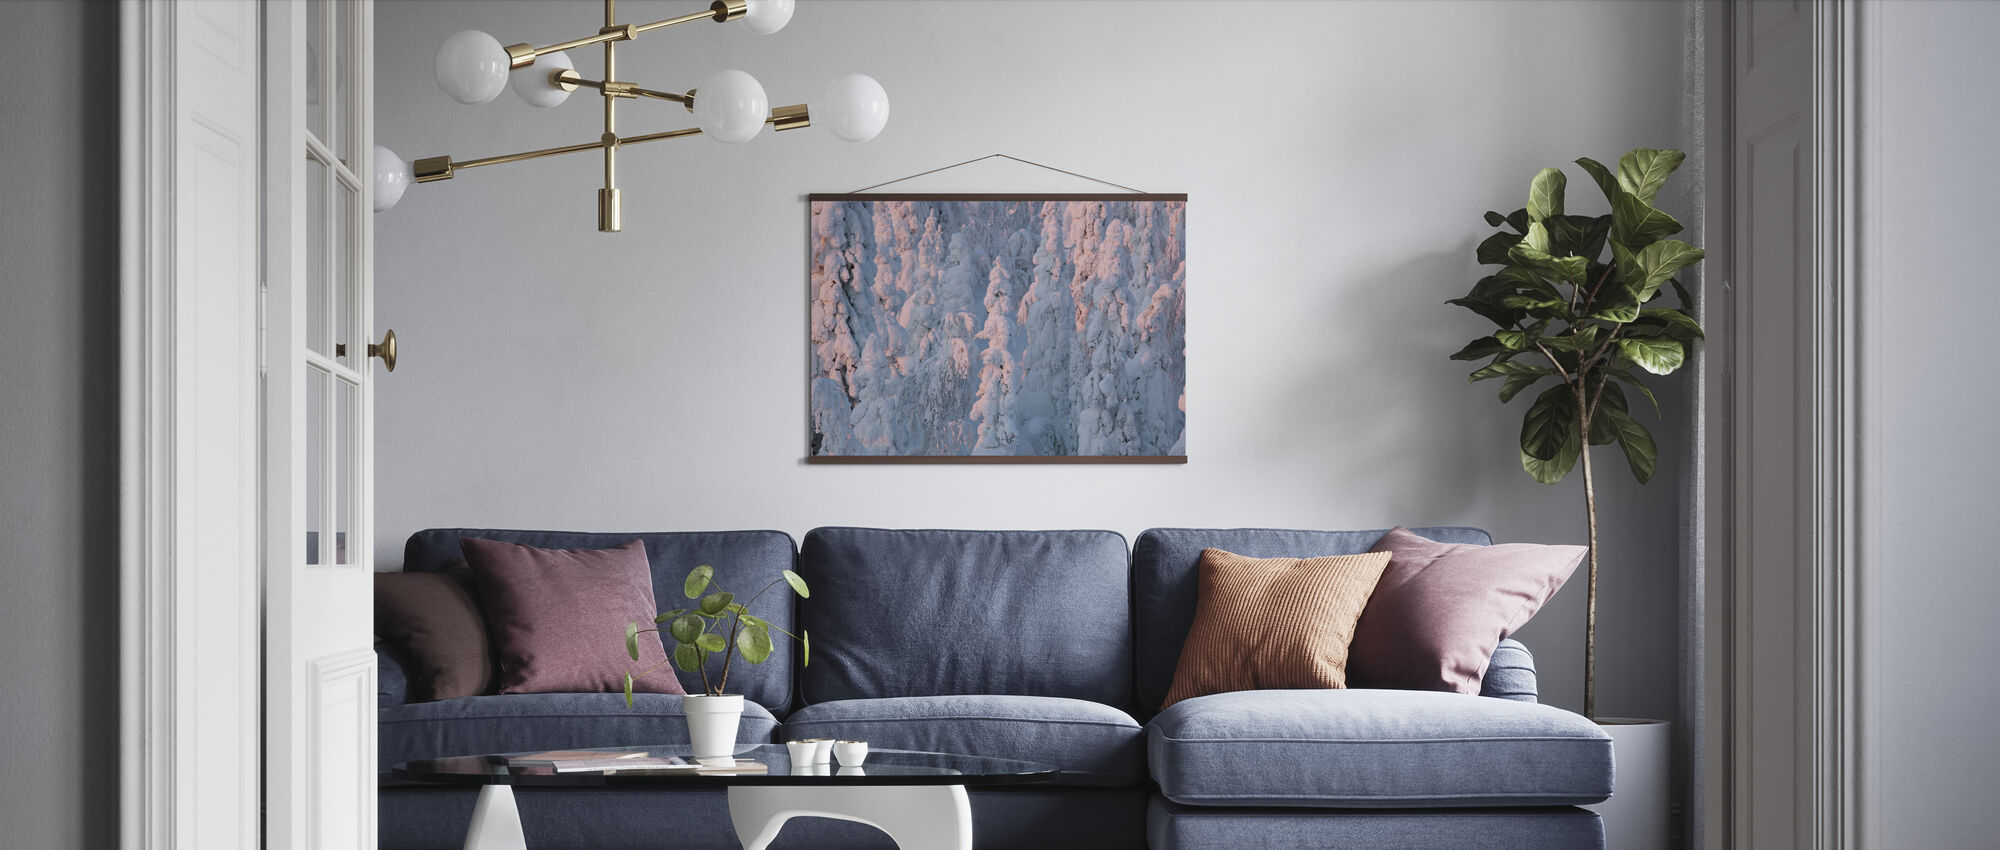 Lapland Winter Landscape - Poster - Living Room